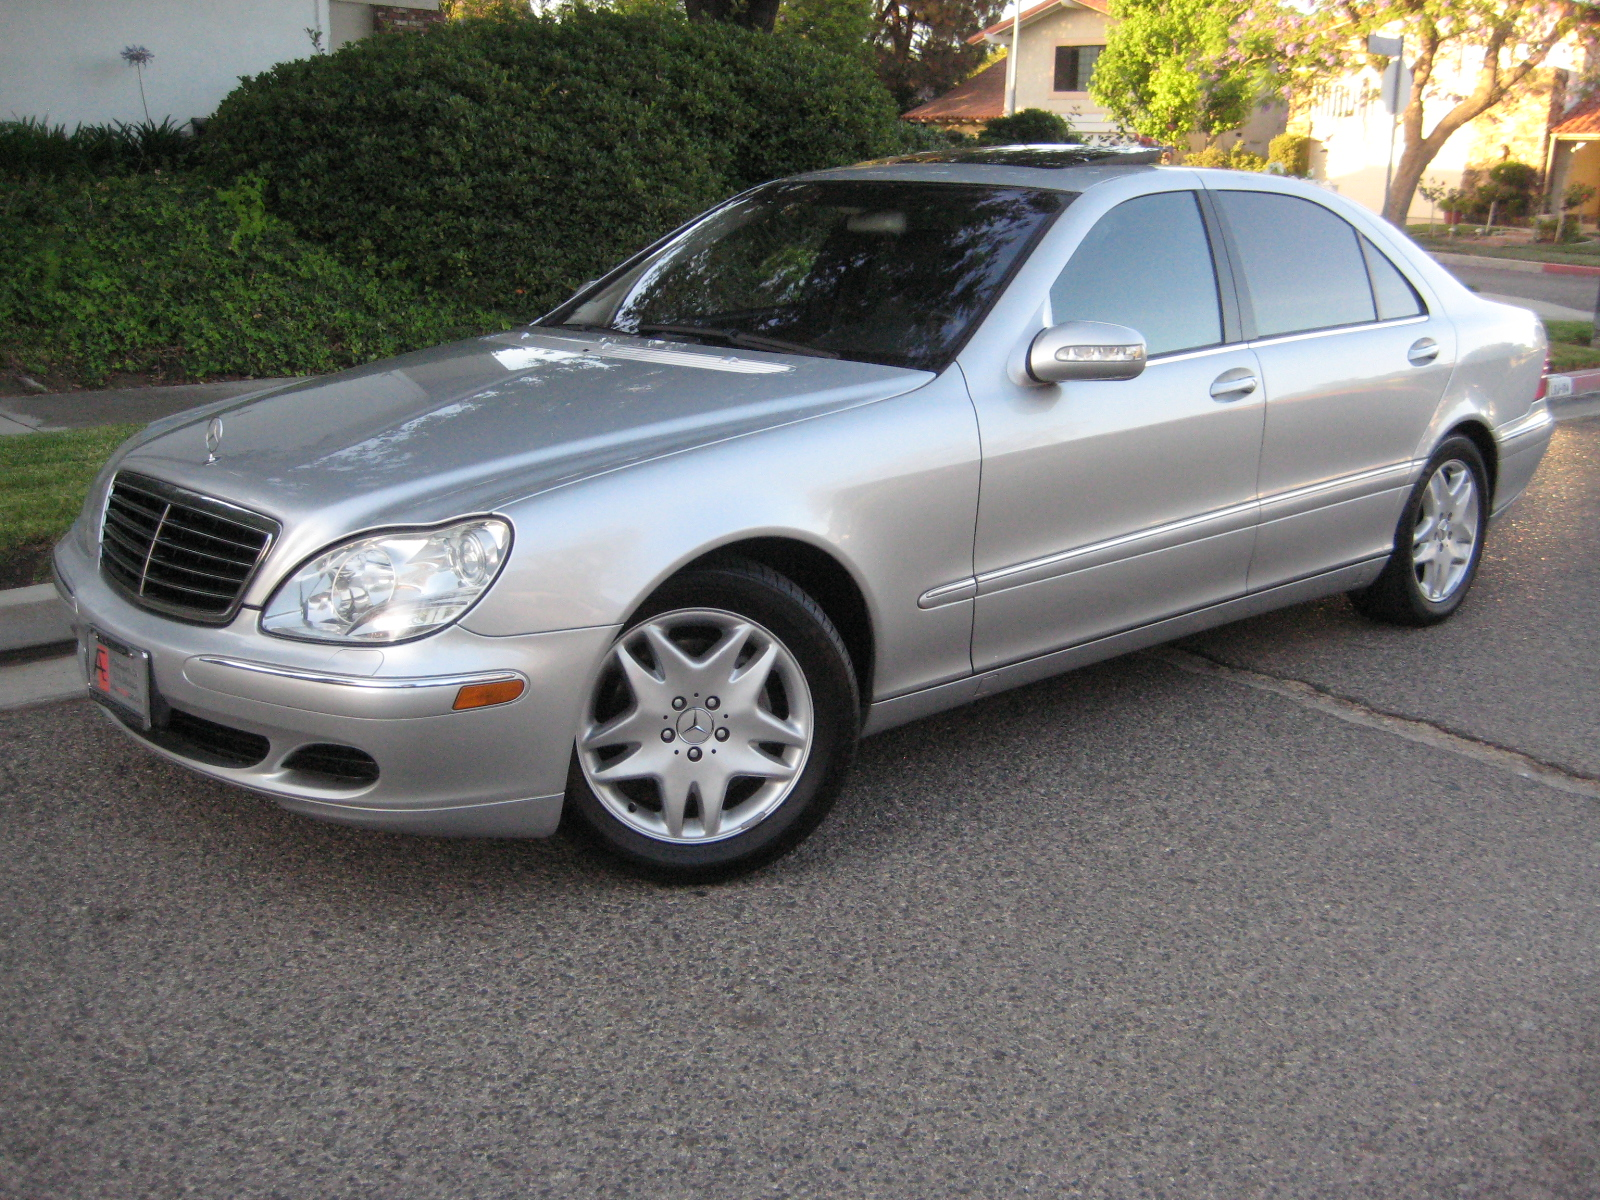 2003 mercedes benz s class pictures cargurus For2003 S500 Mercedes Benz